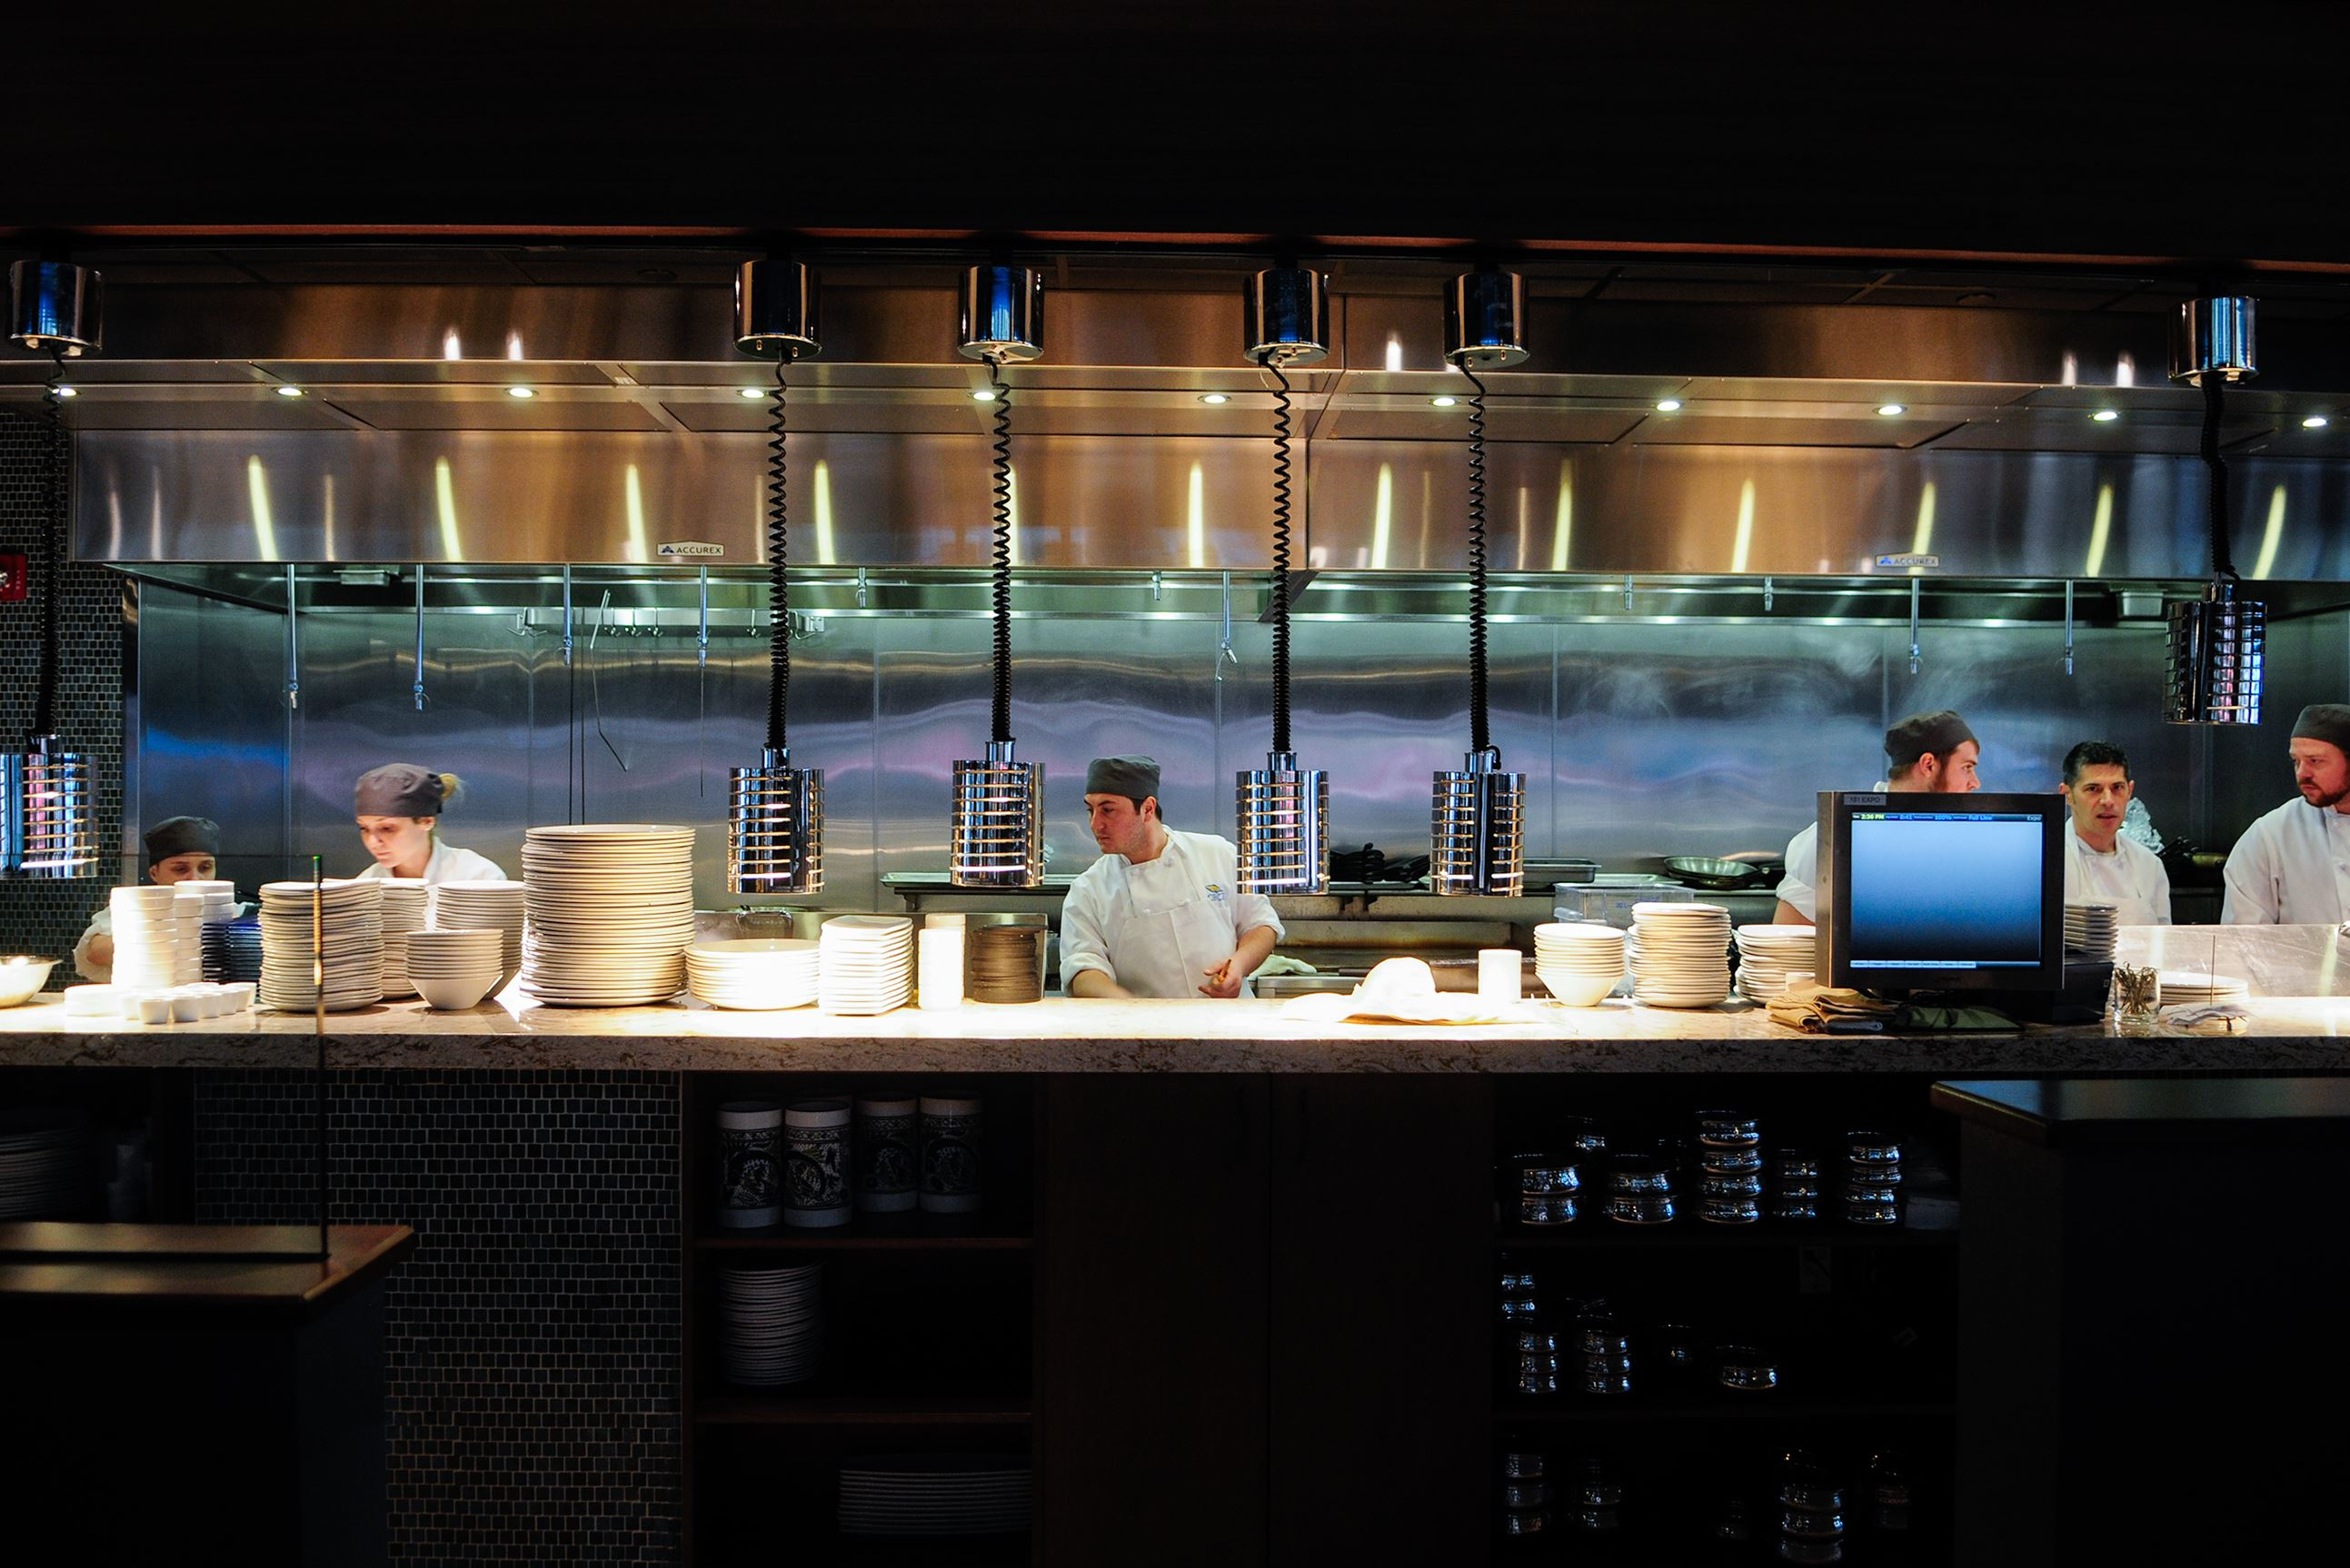 Fall 2015 dining guide answering your questions about pittsburgh restaurants pittsburgh post - Kitchen design pittsburgh ...